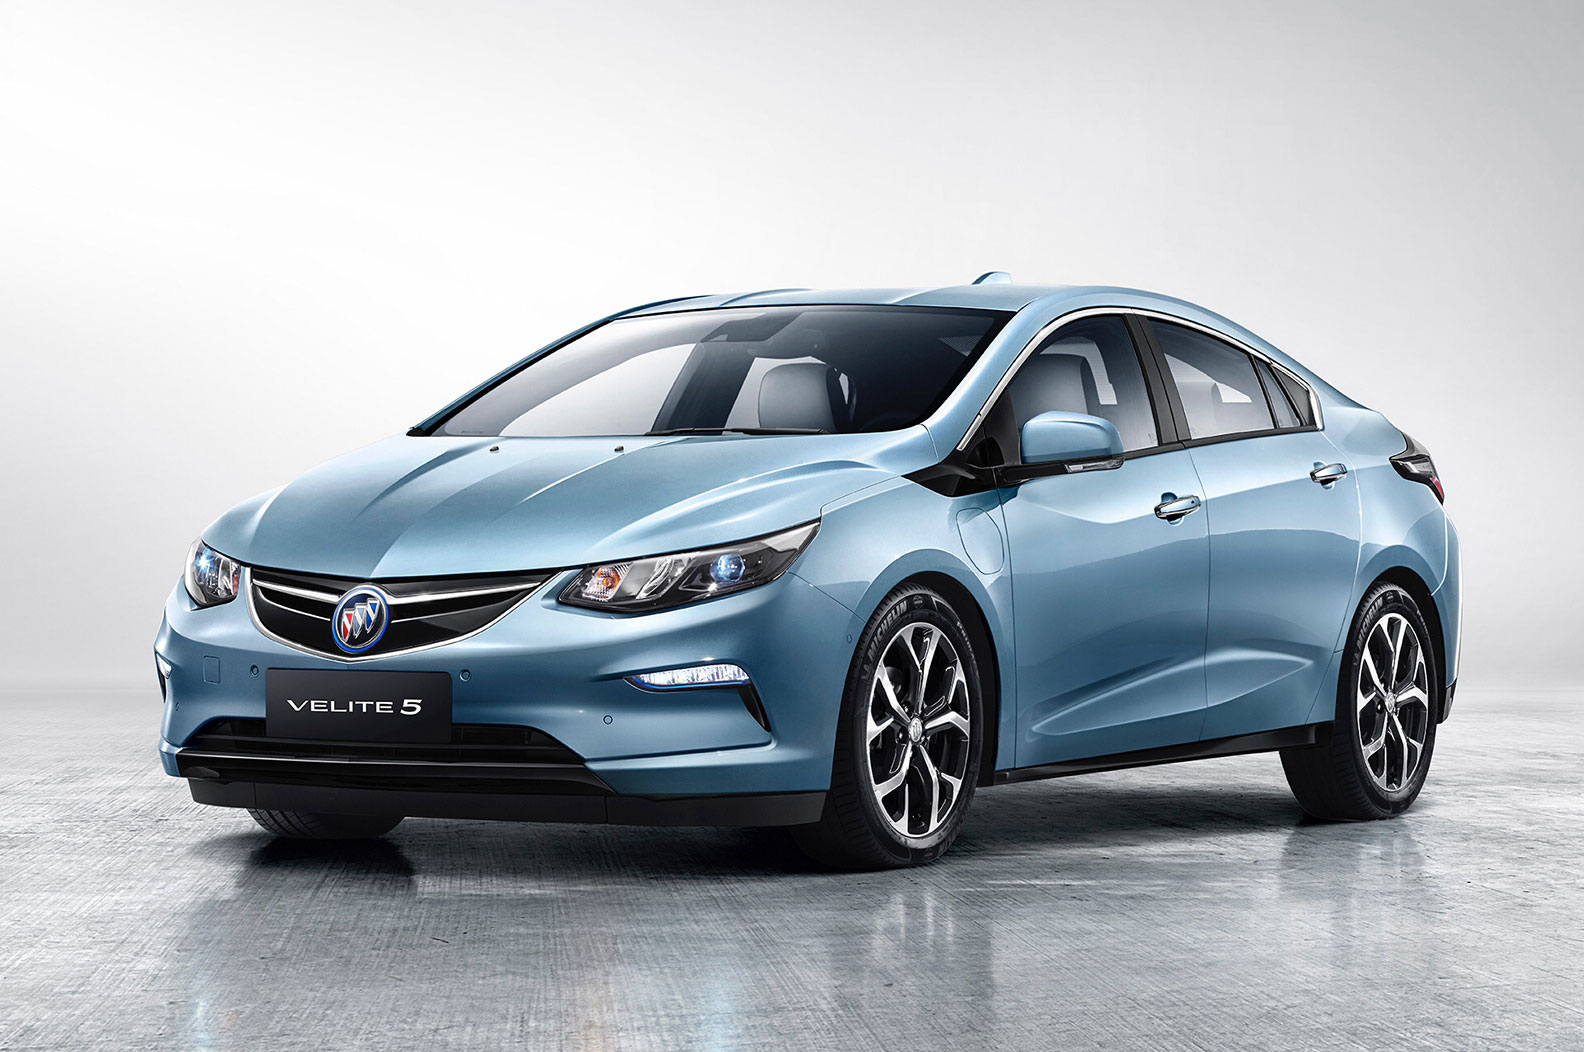 velite-5-debuts-in-china-as-buick-s-first-extended-range-ev-117058_1.jpg